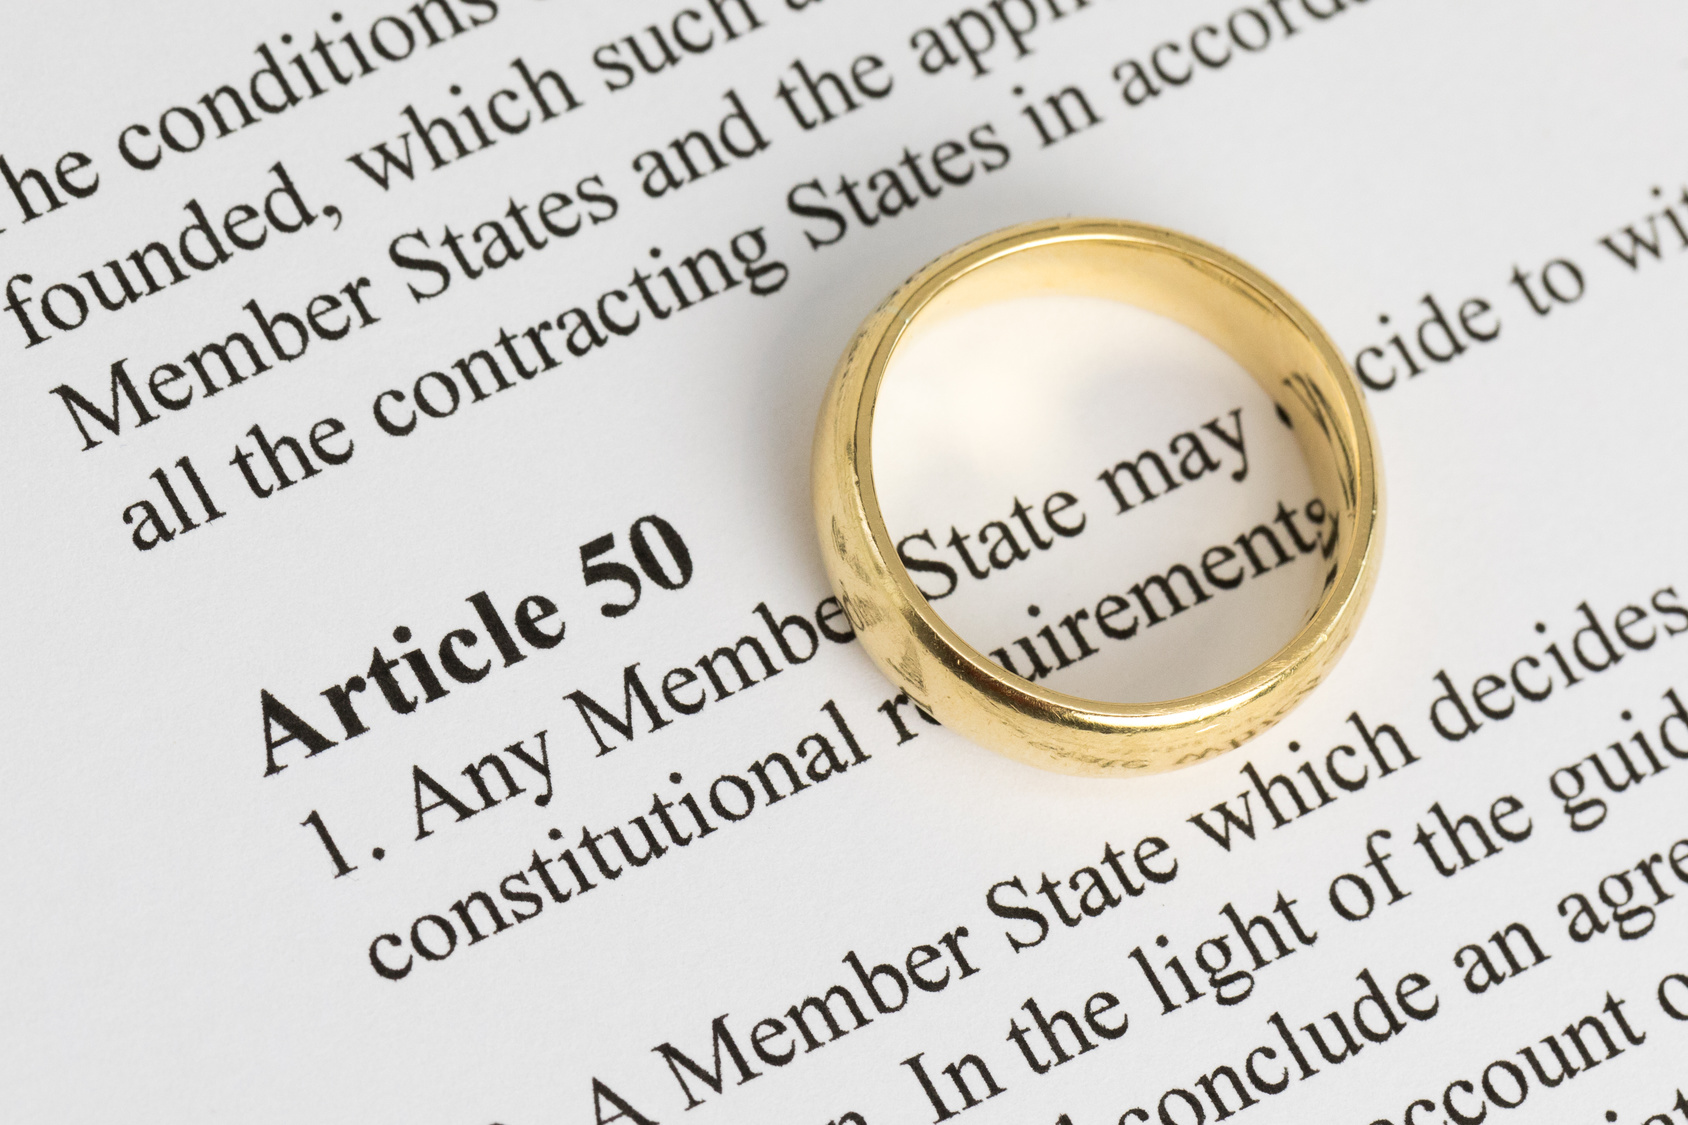 Article 50 extract with wedding ring